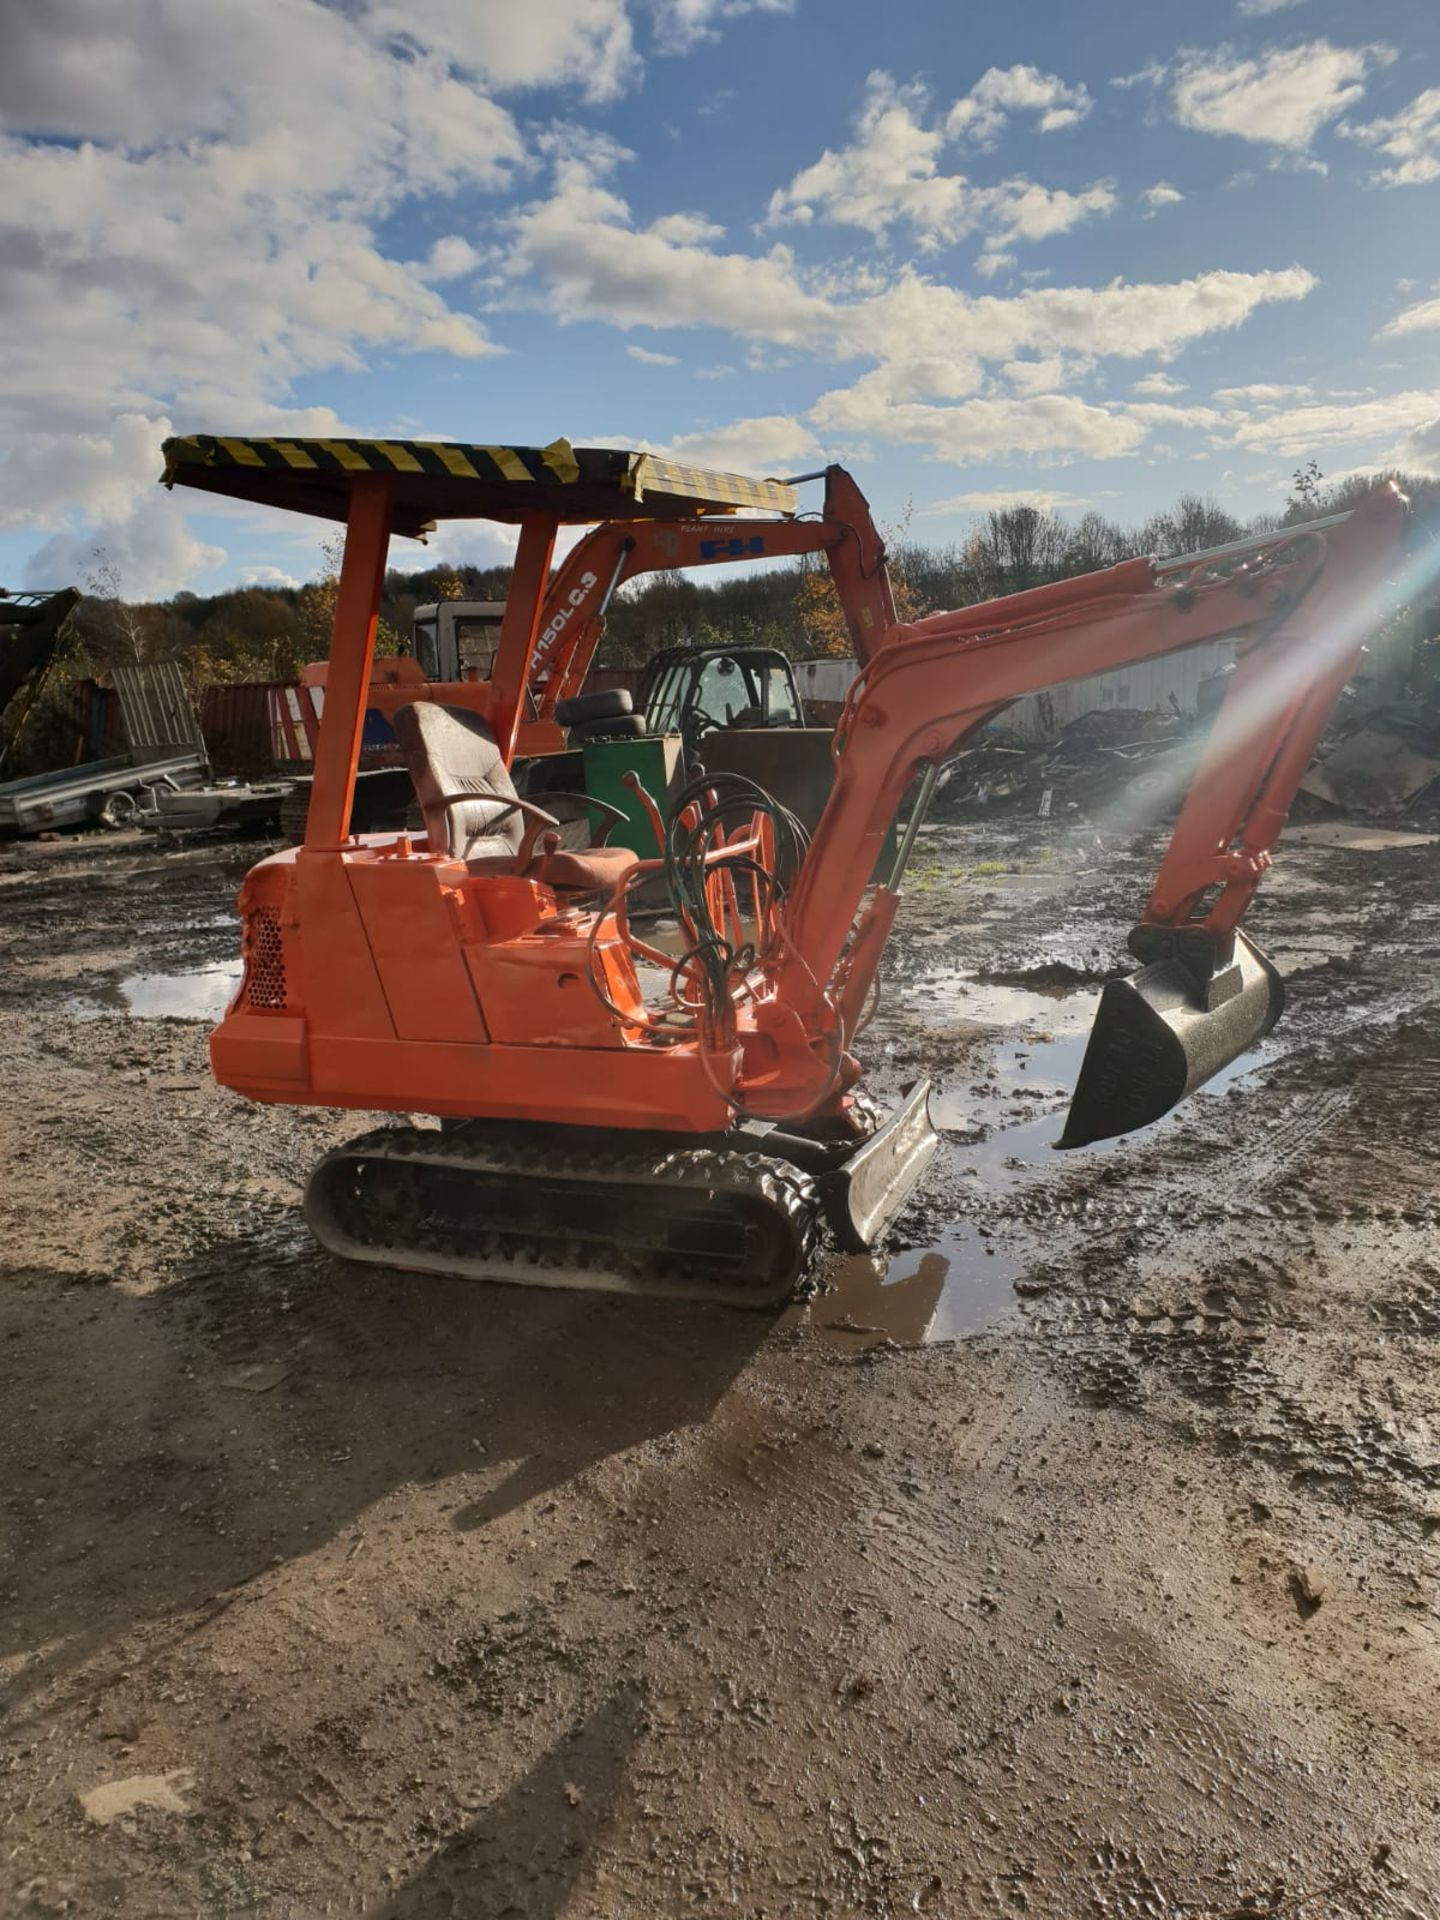 KUBOTA MINI DIGGER RUBBER TRACKED EXCAVATOR, 1.5 TON, STARTS AND DRIVES *NO VAT* - Image 5 of 8